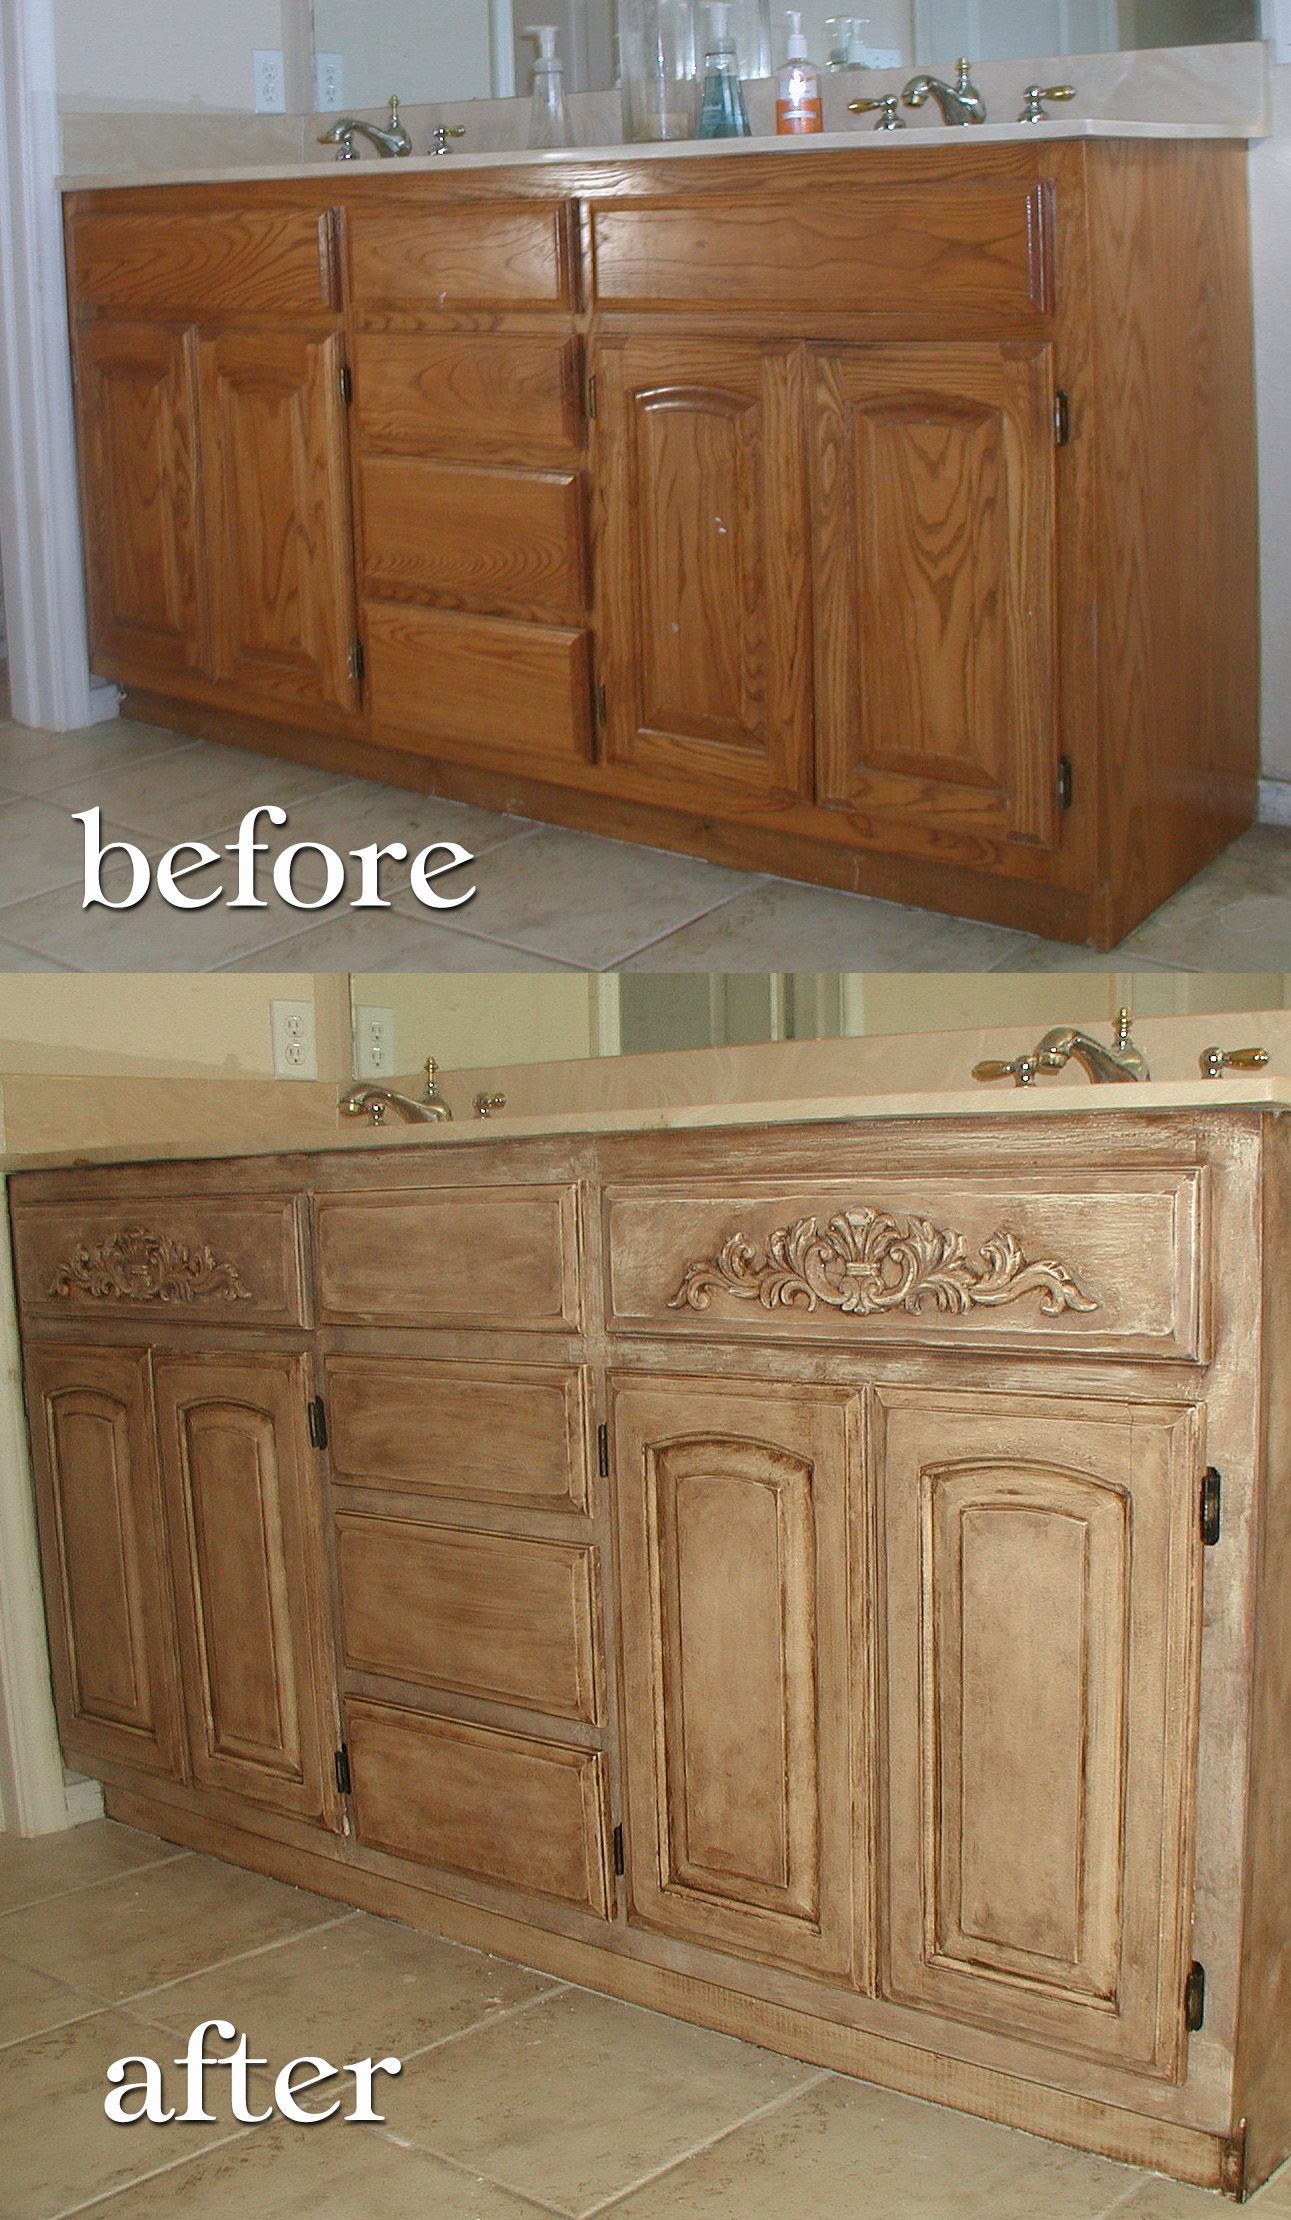 Annie sloan chalk paint bathroom cabinets - Project Transforming Builder Grade Cabinets To Old World Ascp Old White With Dark Walnut Glaze Oak Bathroompainting